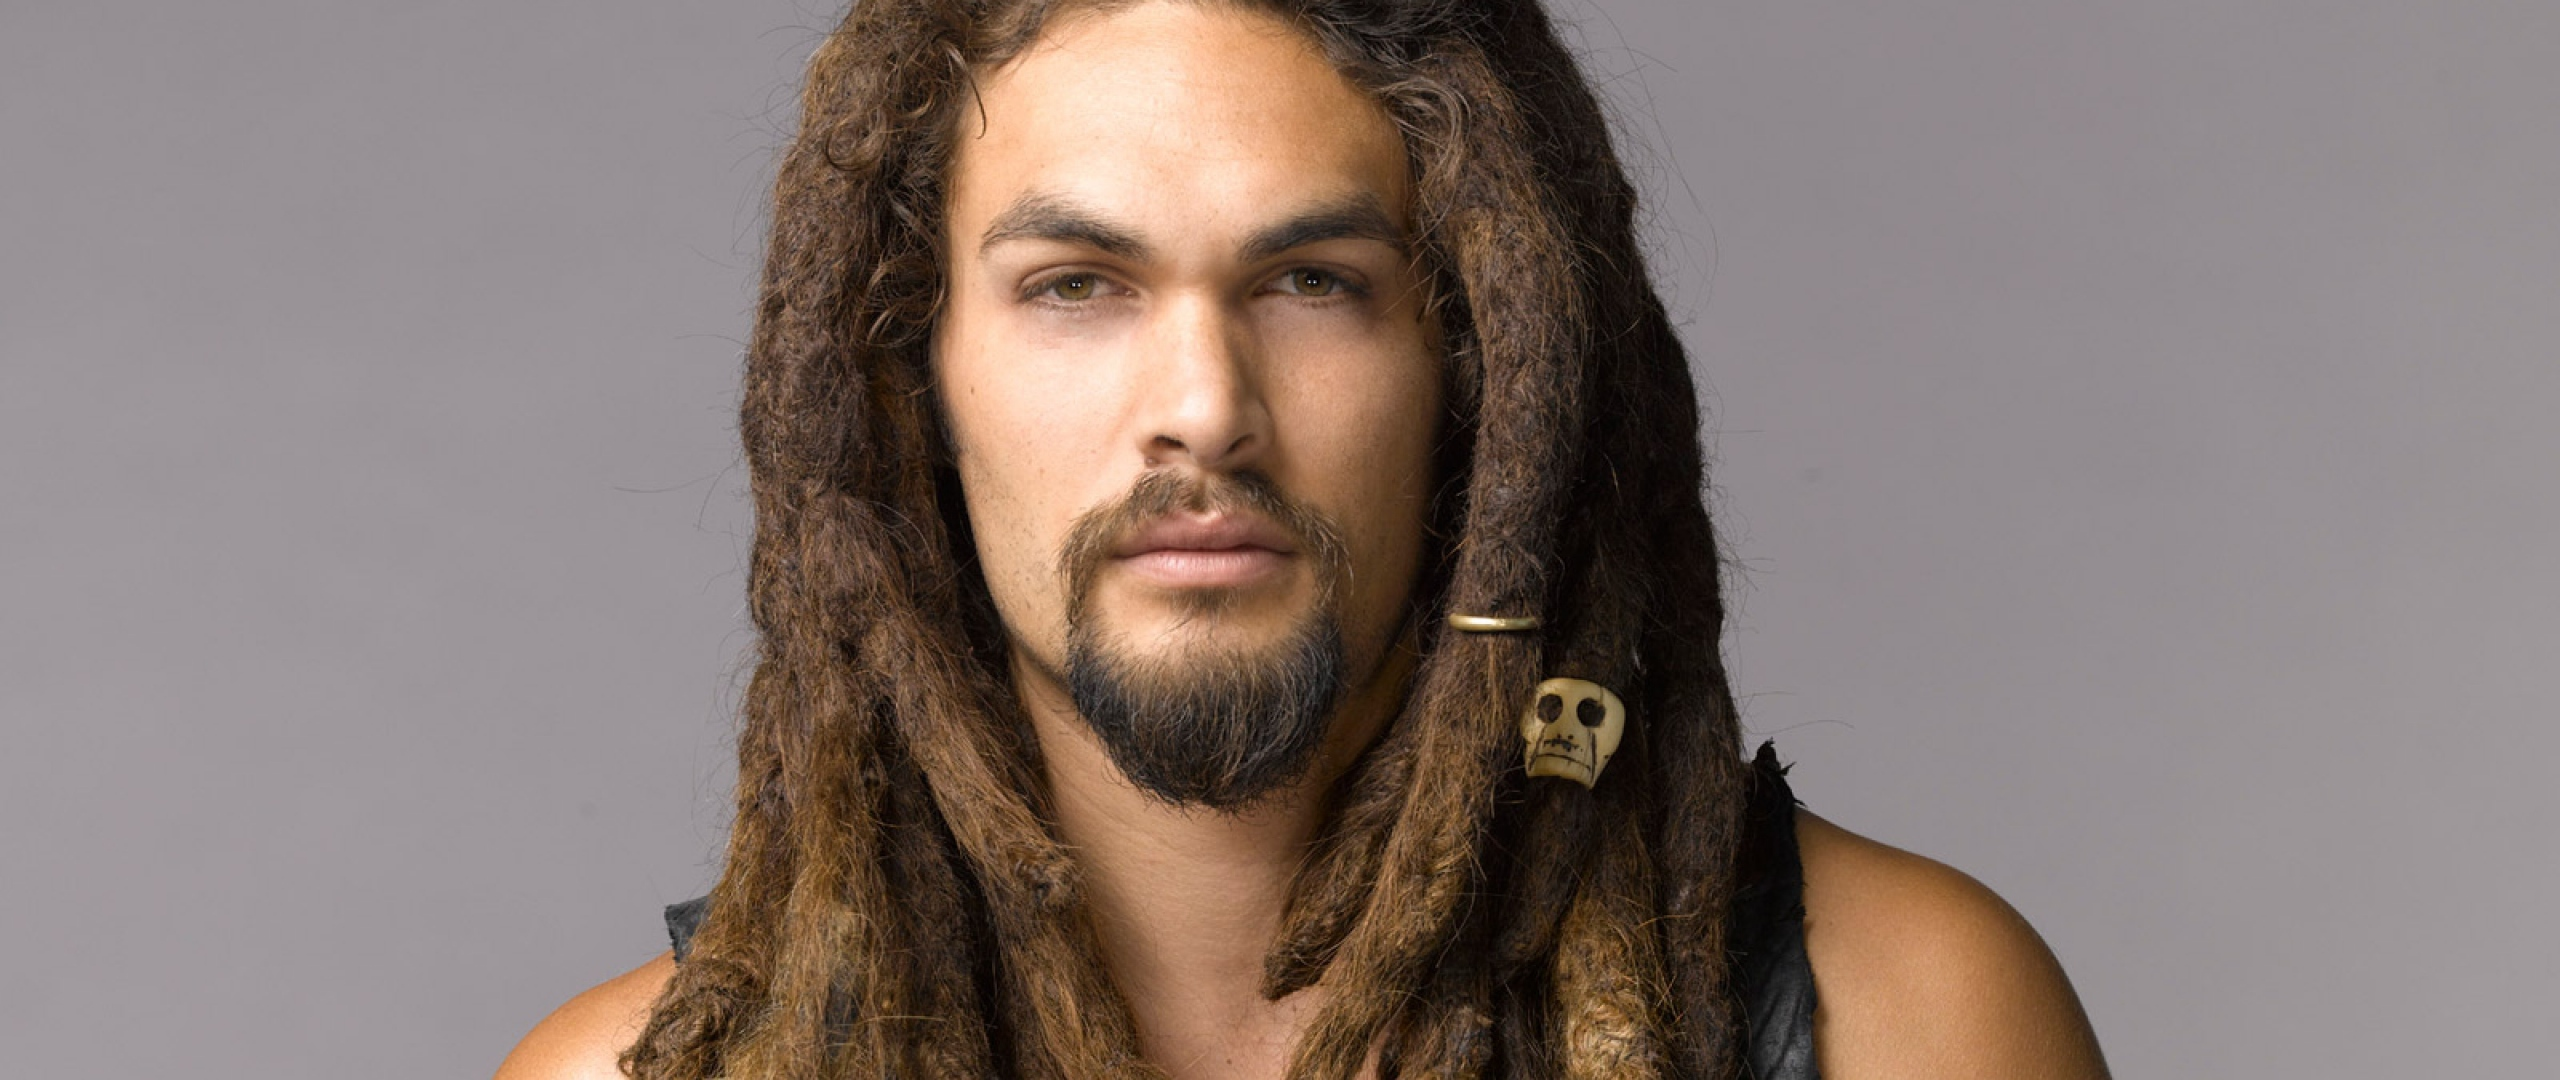 Jason Momoa Wallpapers High Resolution and Quality Download 2560x1080